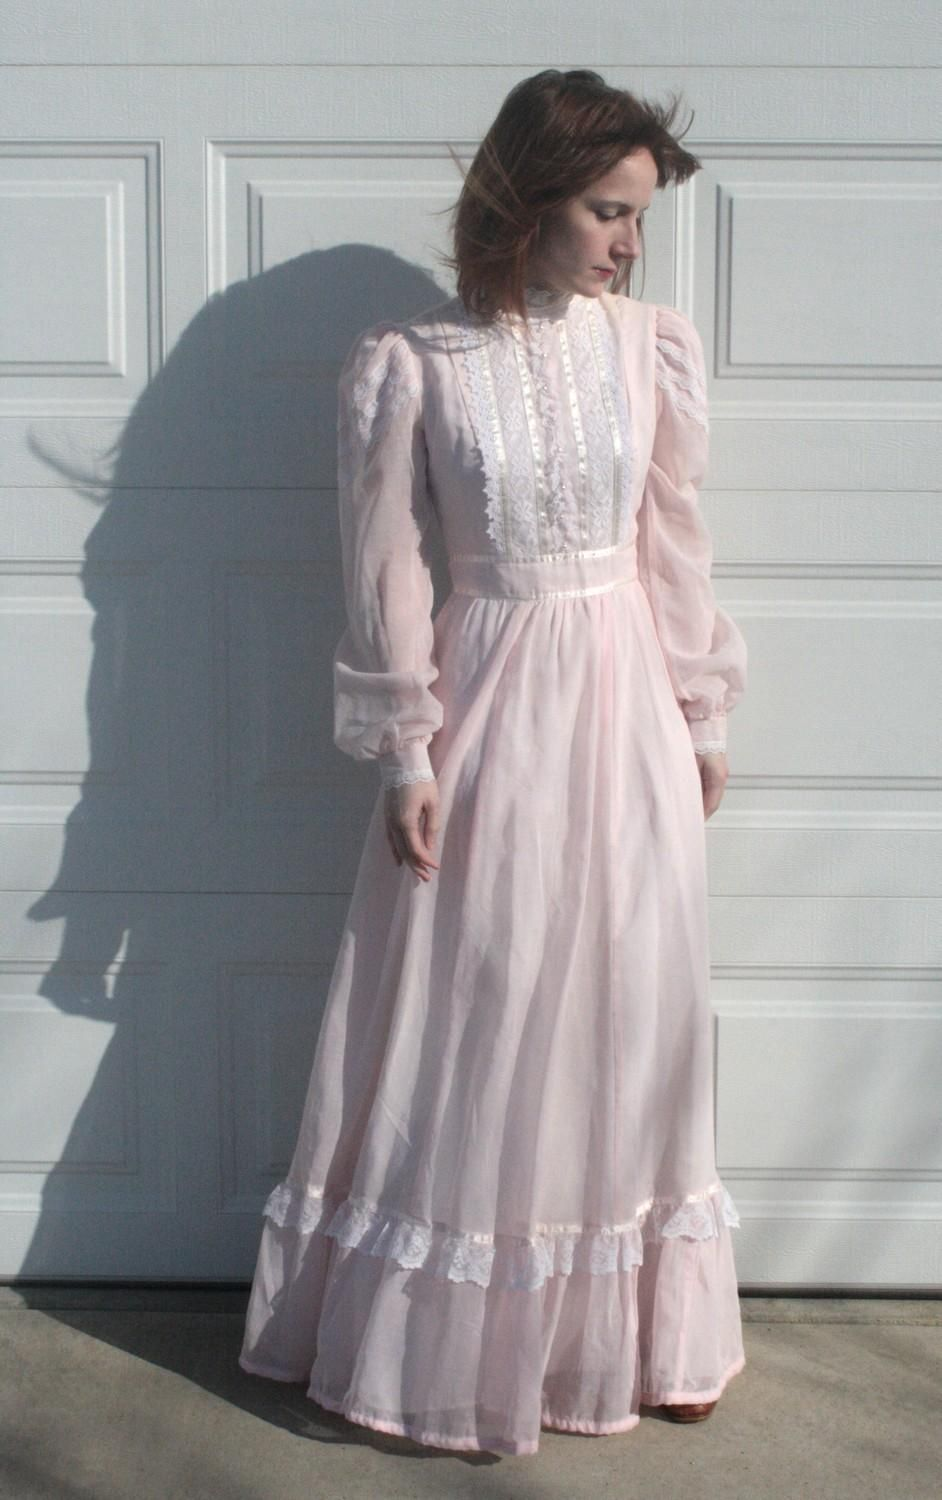 THIS was my prom dress in 1982! Pink Gunne Sax Prairie Dress. Just ...